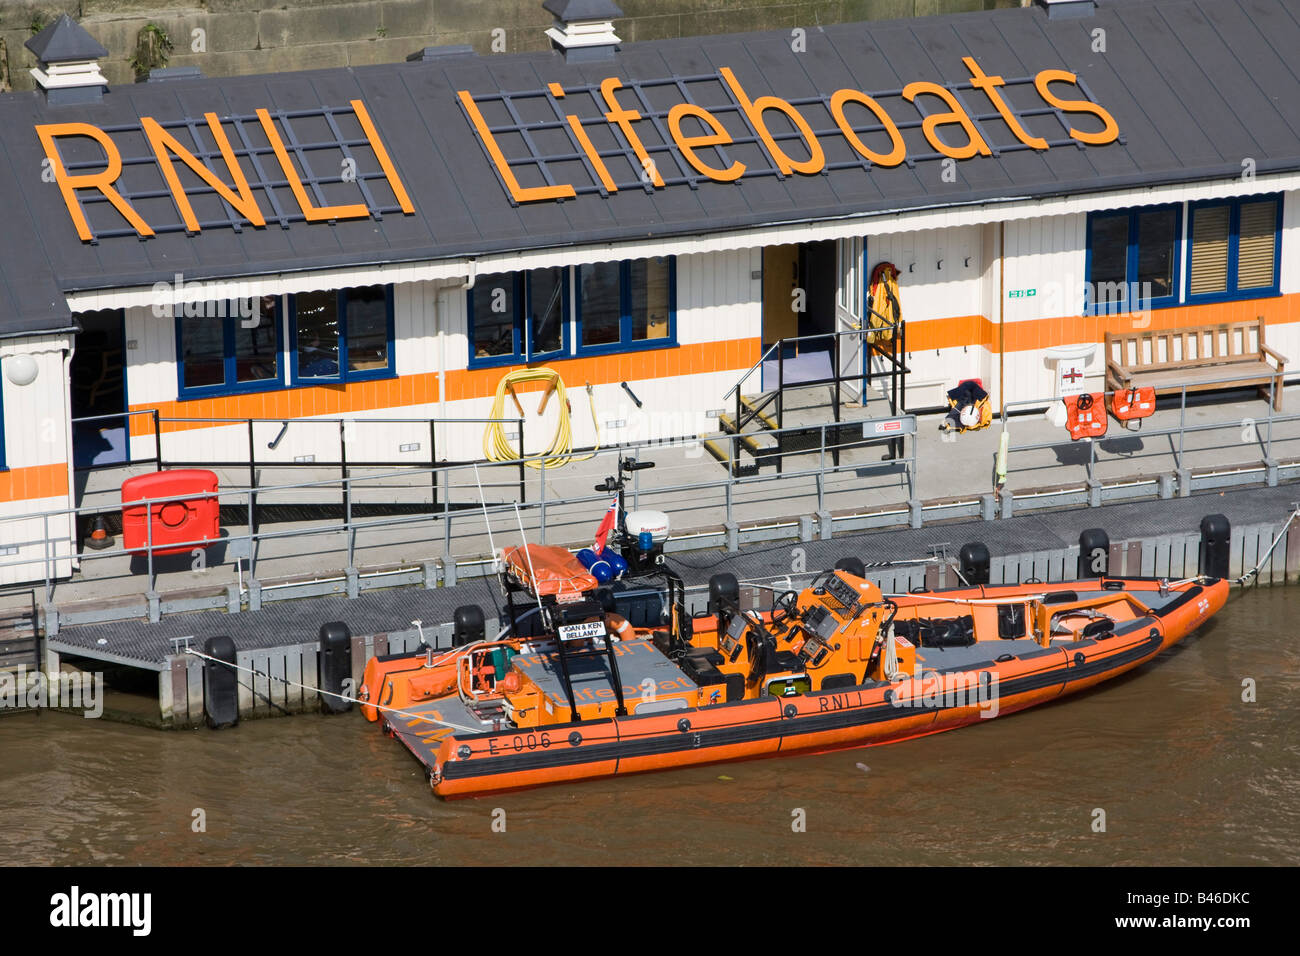 Tower Lifeboat is one of the RNLI's newest lifeboat stations city of london england uk gb - Stock Image